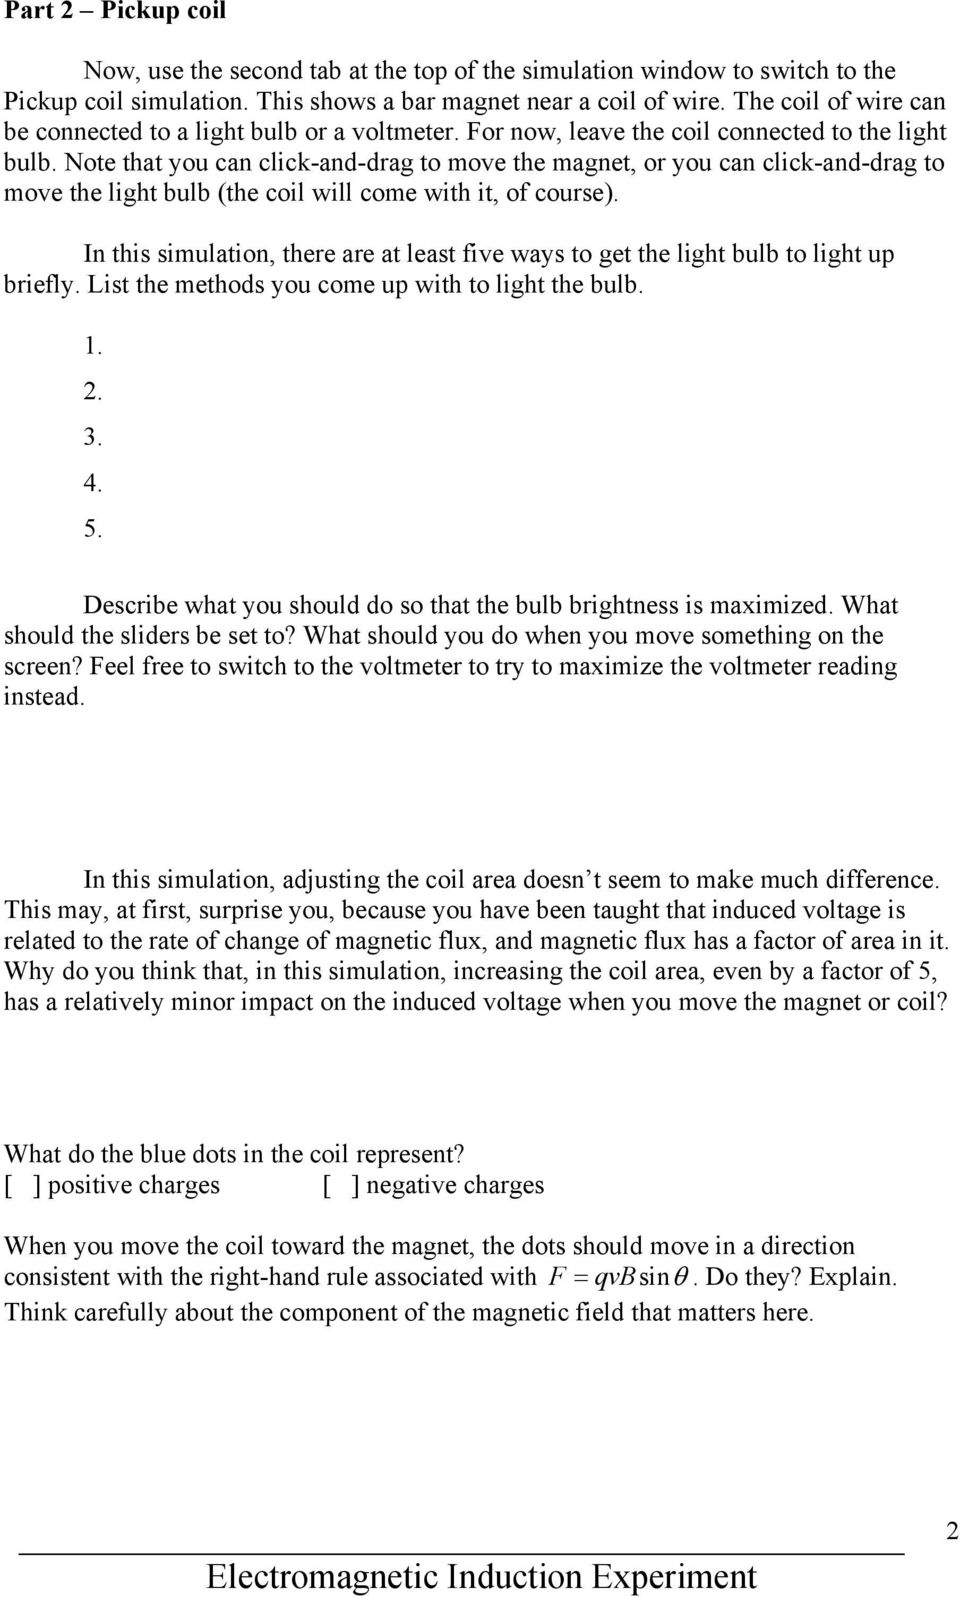 Electromagnetic Induction Experiment - PDF